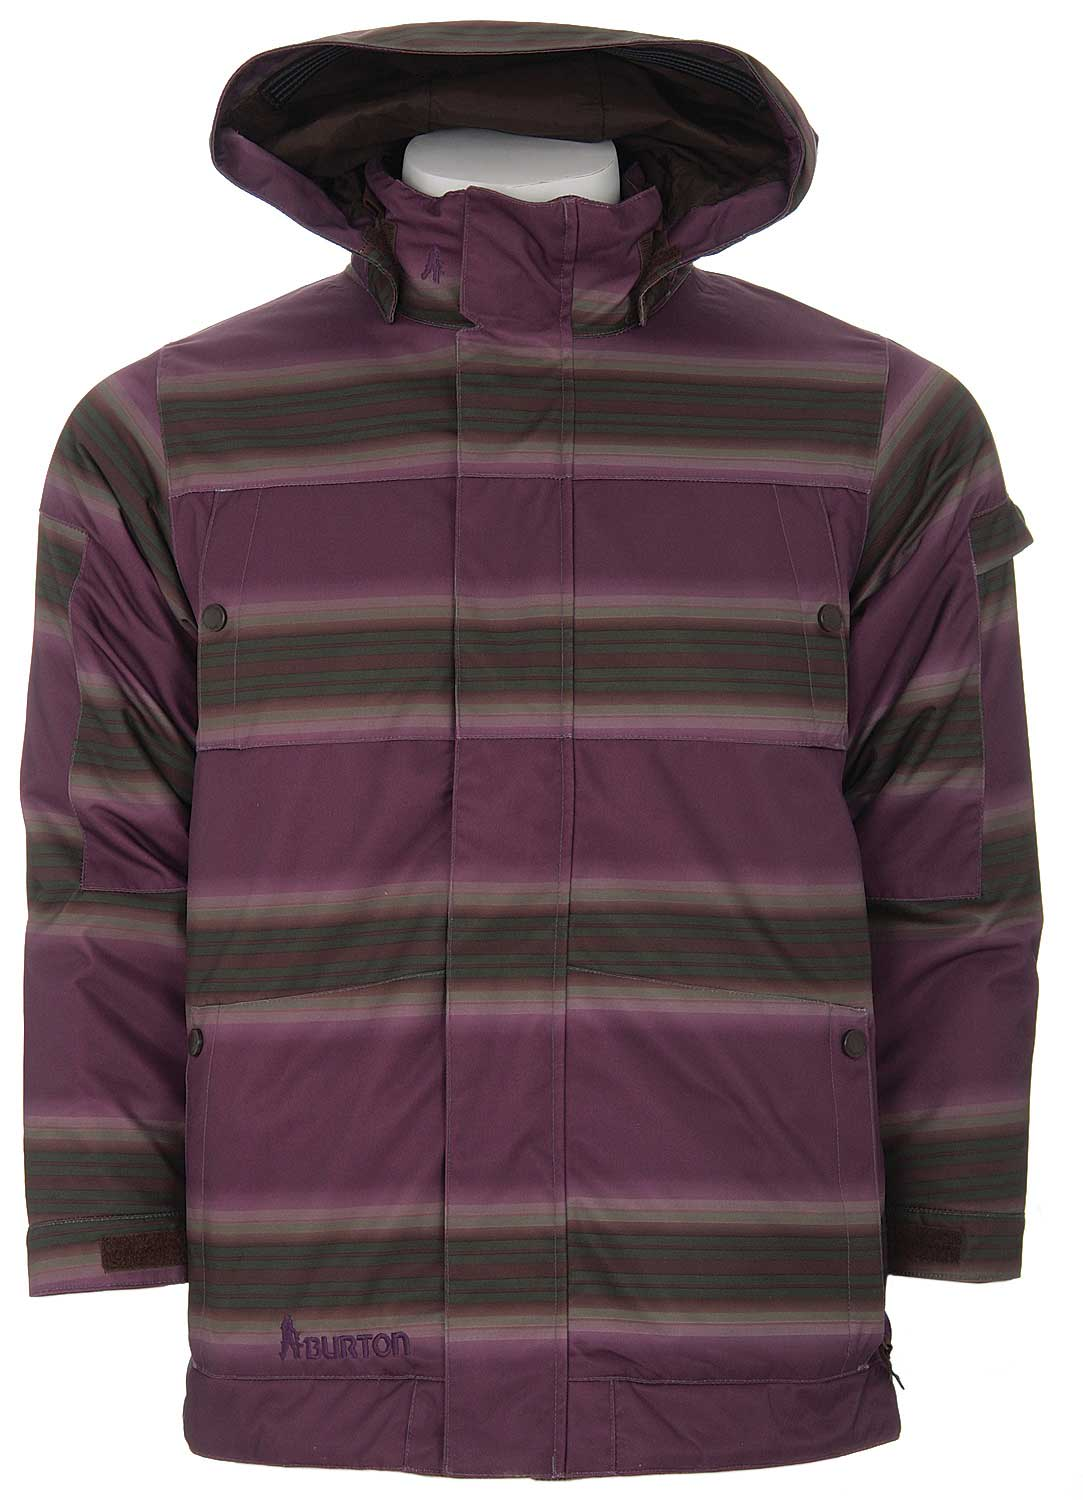 Shop for Burton The White Collection Cosmic Delight Snowboard Jacket Mocha Faded Stripe - Kid's